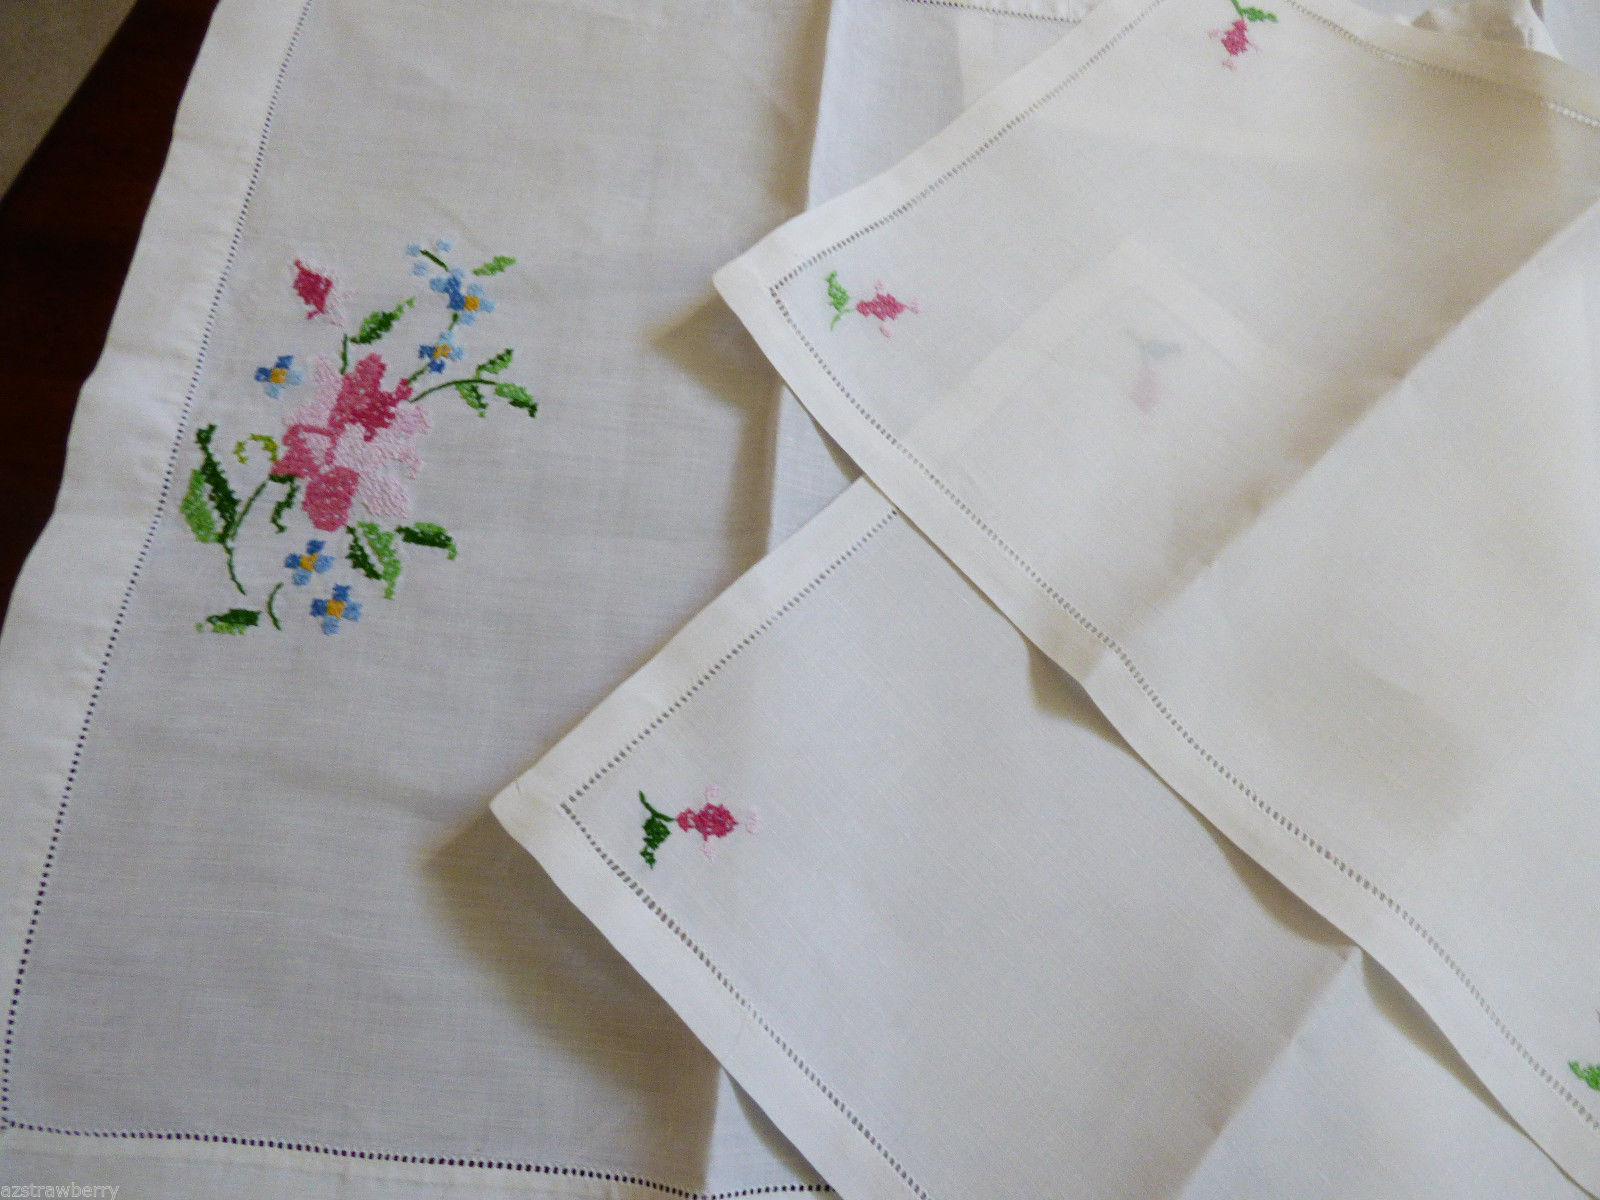 VTG lot of 4 Hand made Linen Embroidery Cloth Placemat napkins table runner